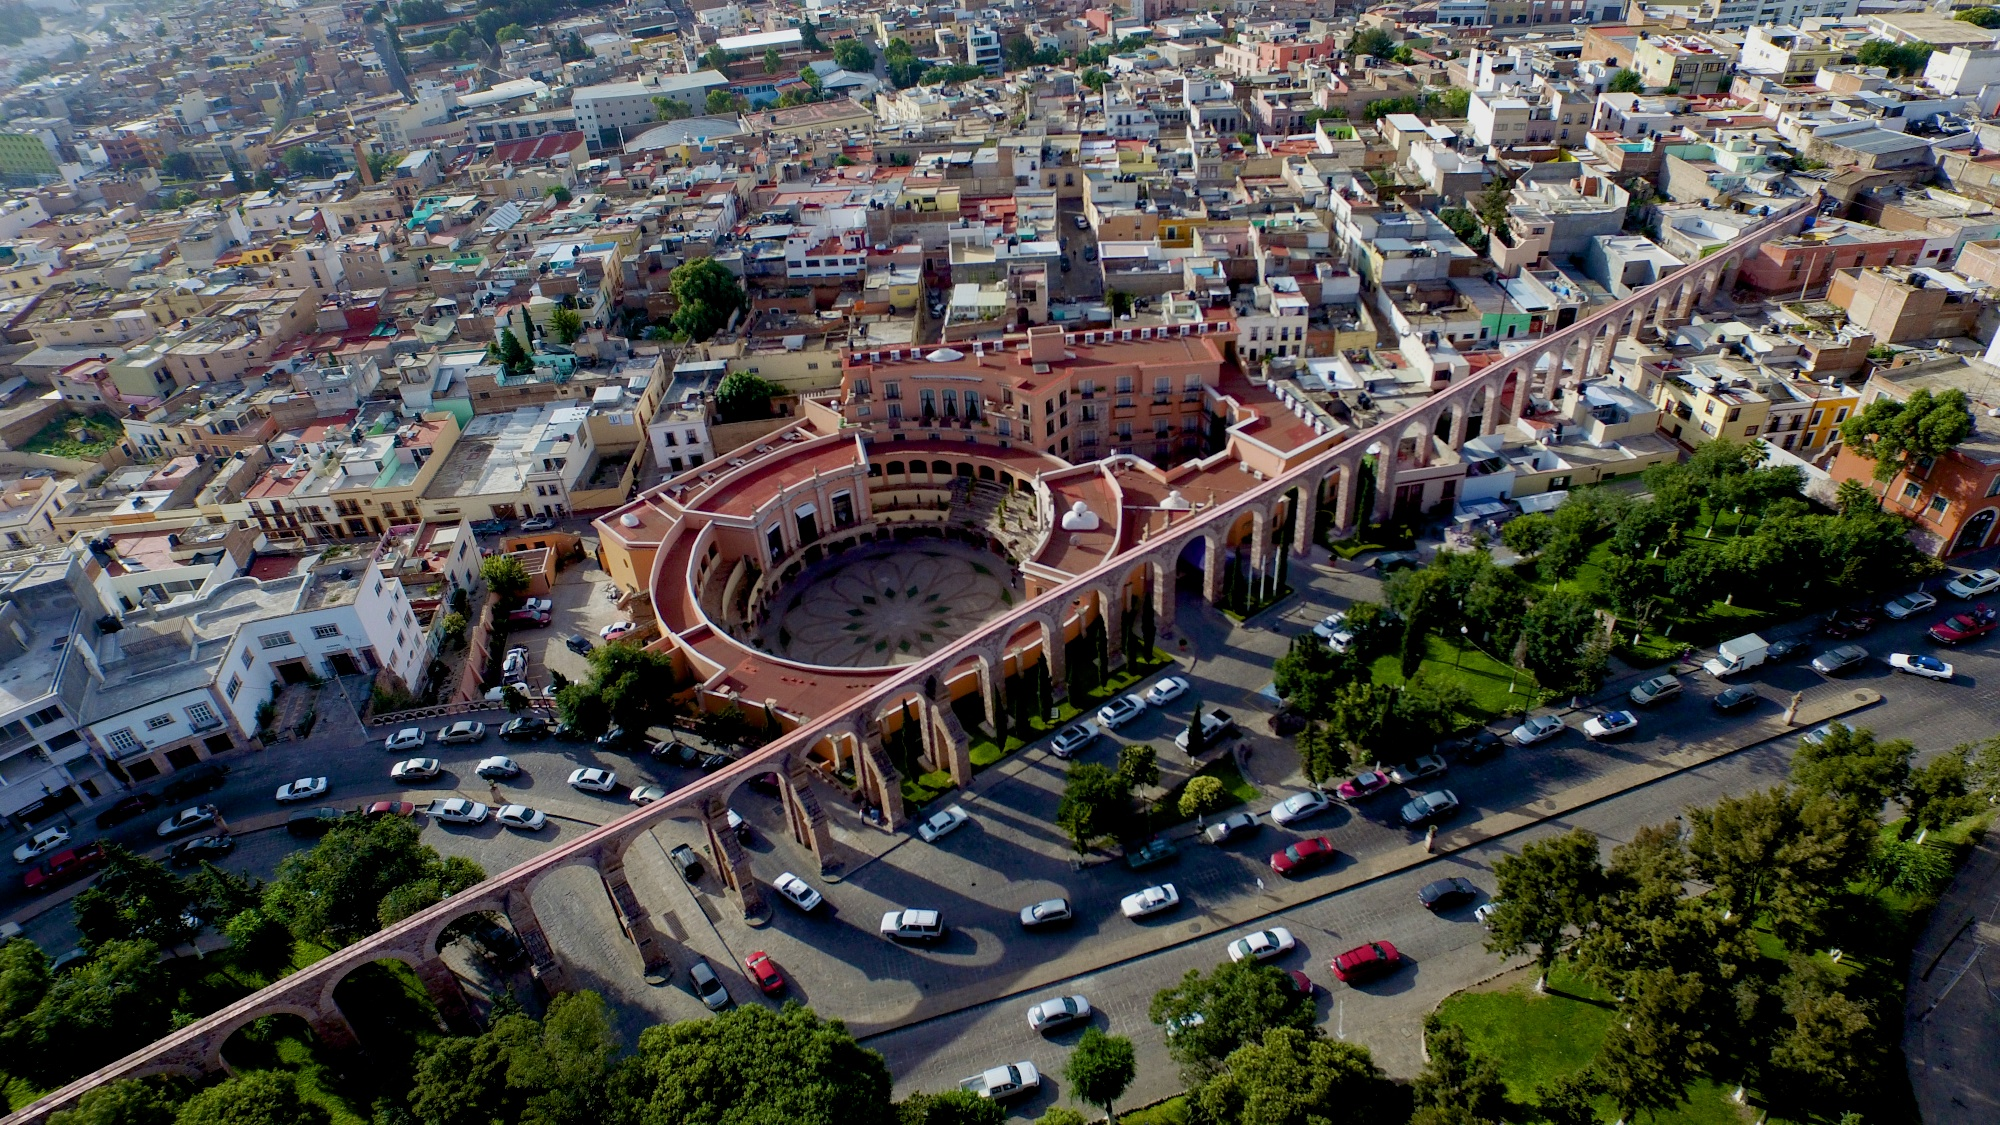 Aerial Photo in Mexico